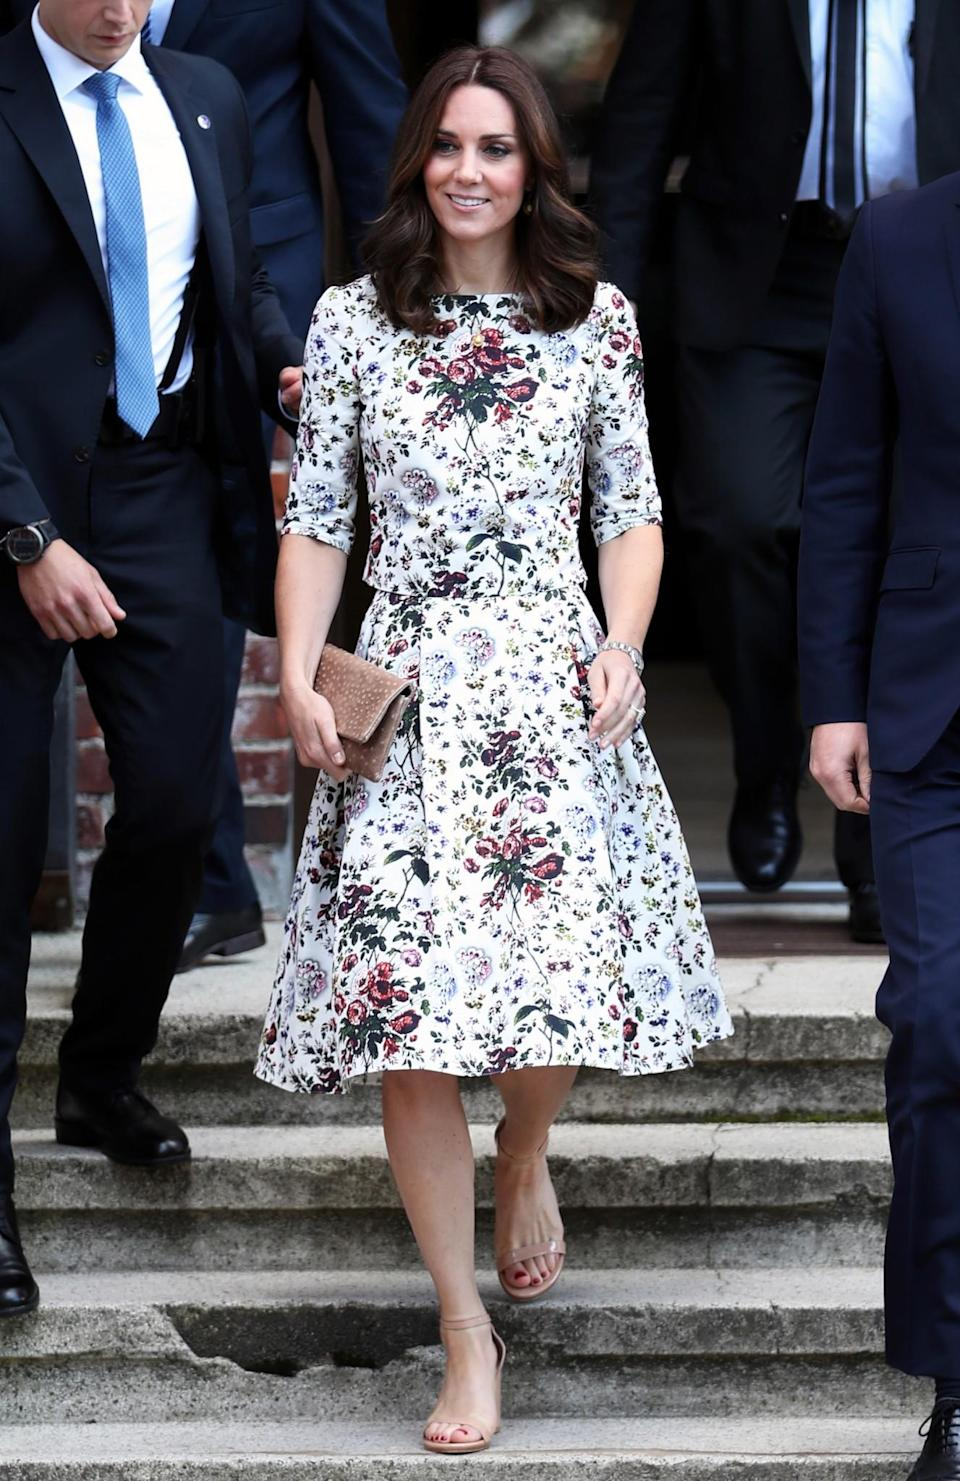 <p><b>For a sombre visit to a concentration camp, Kate dressed conservatively in a floral, midi dress by London Fashion Week designer Erdem. <br><em>[Photo: PA]</em> </b></p>